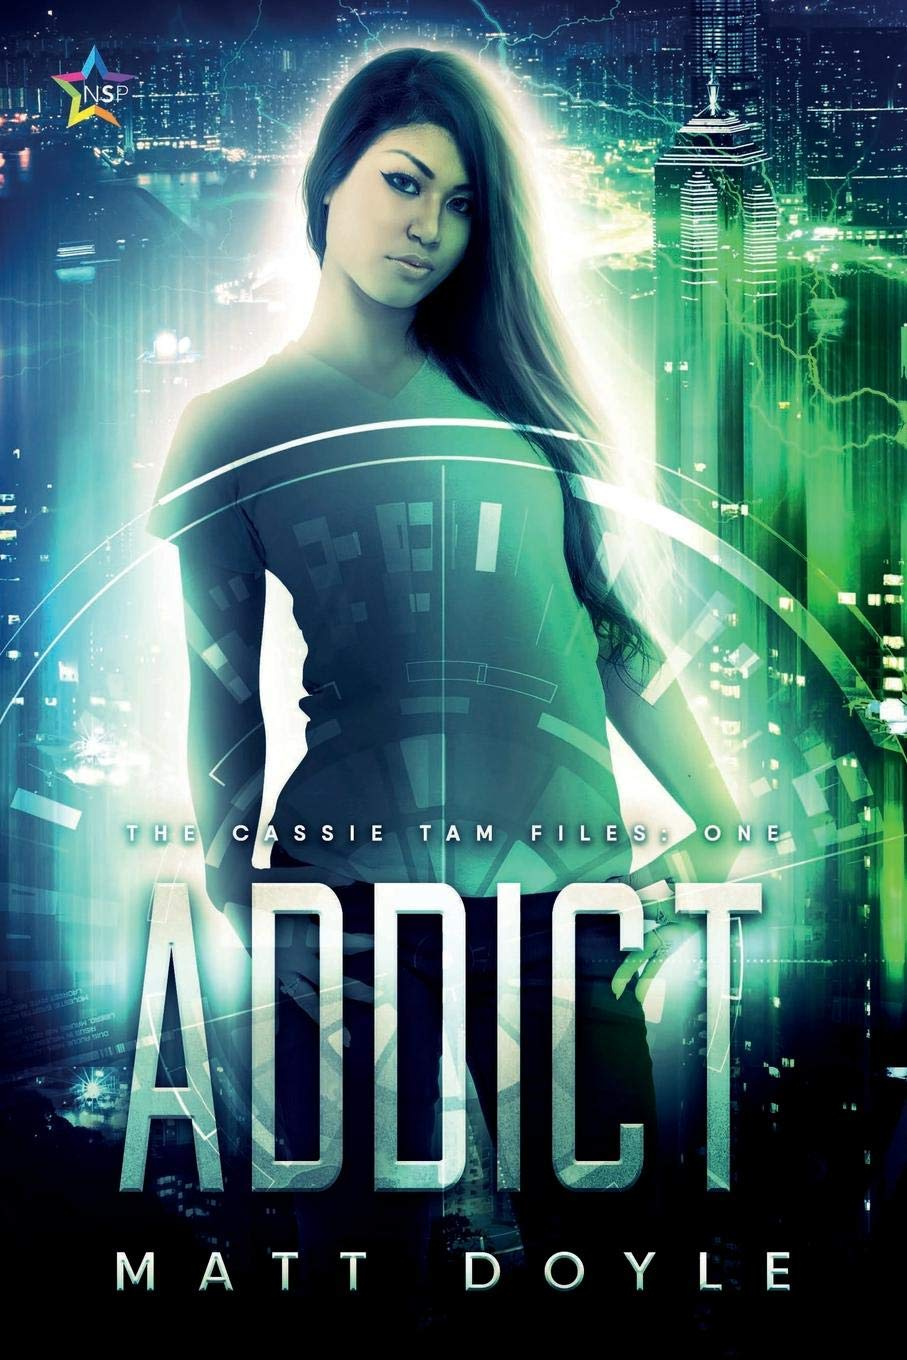 """Cover of """"Addict,"""" the first book of The Cassie Tam Files"""